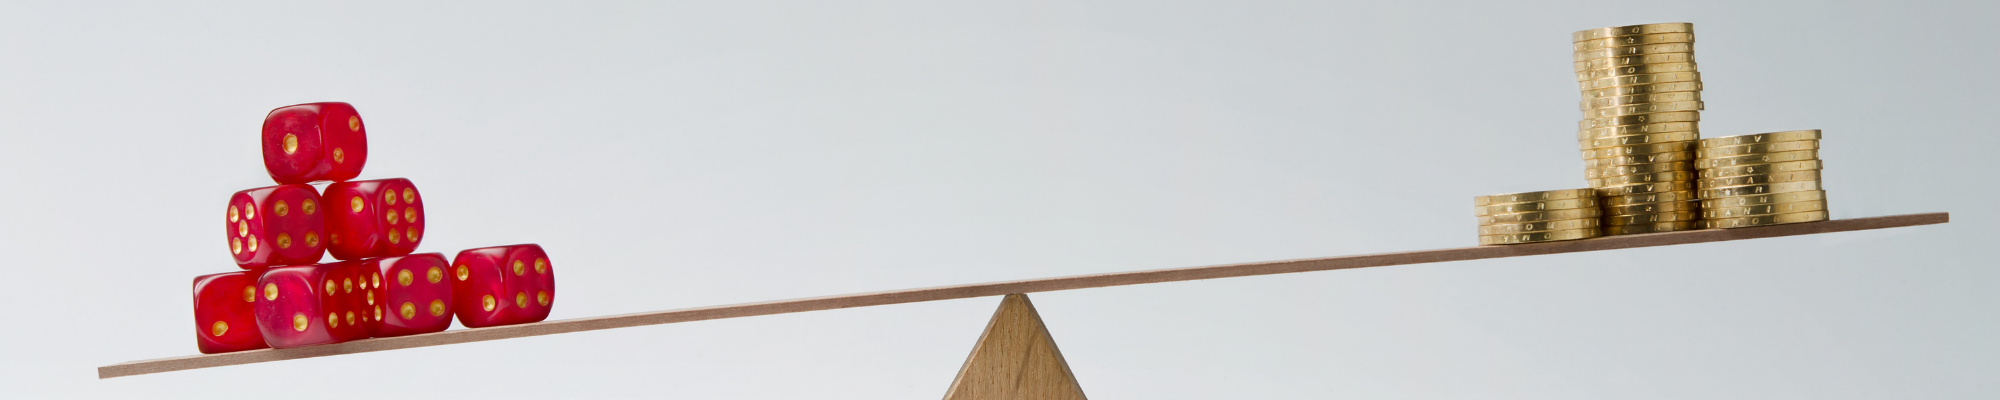 How do you Balance the costs of Insurance with the Risks to your Business?